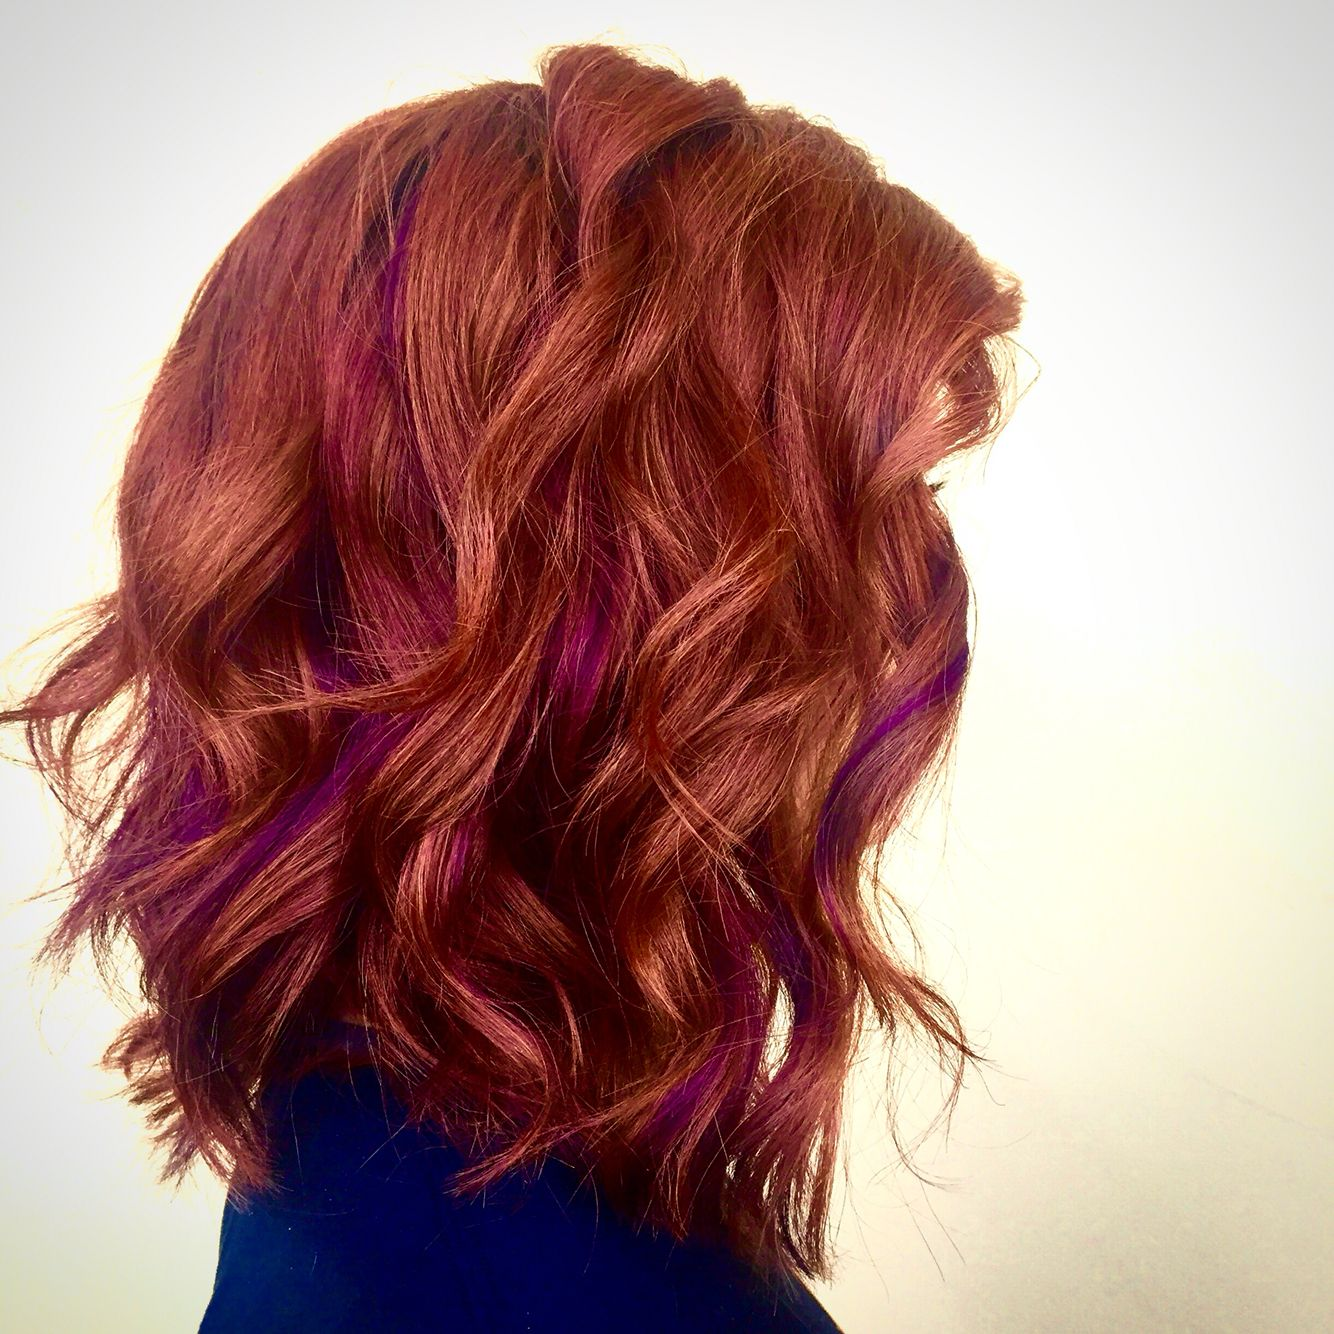 Red And Purple Hair Redhair Naturalred Purplehair Ginger With